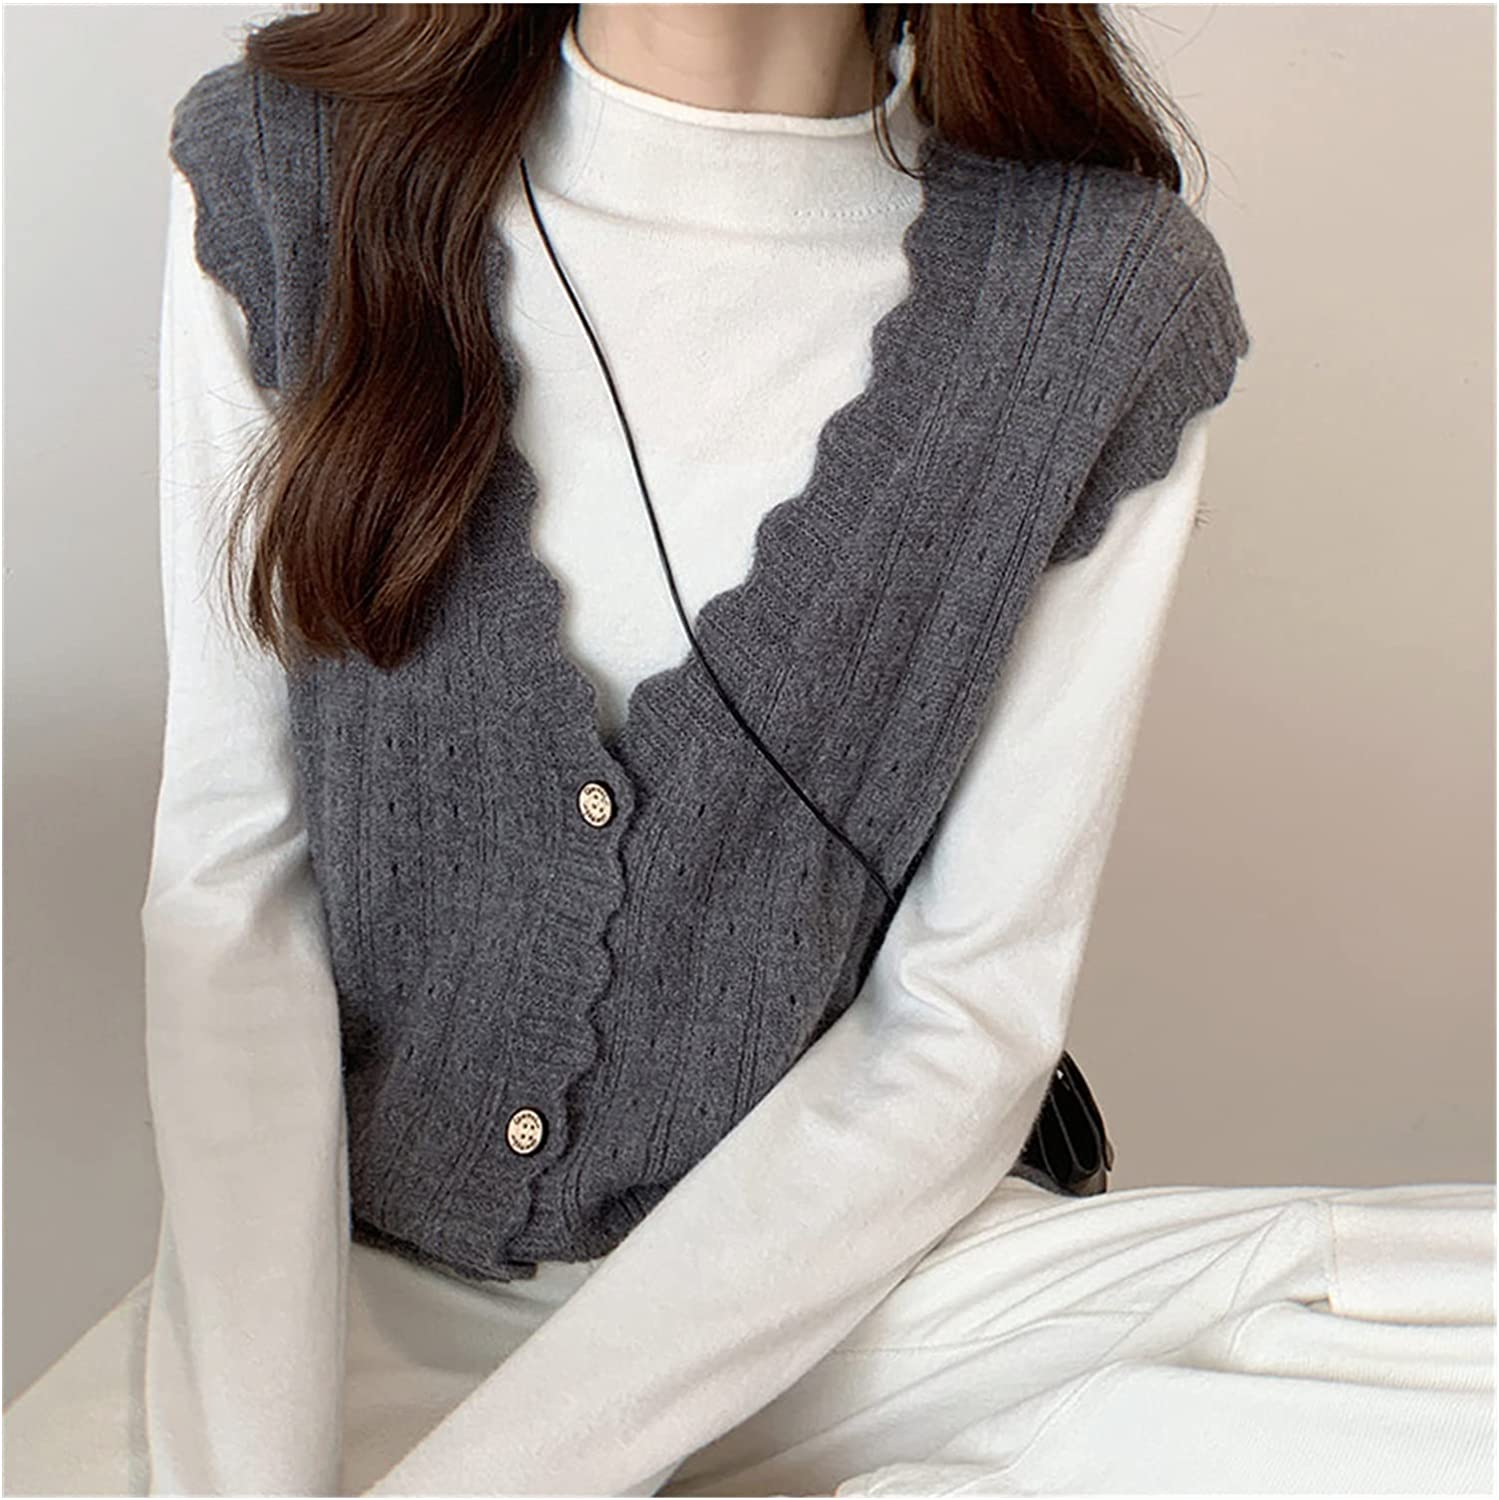 EEKLSJ Women Knitted Sweater Vests Autumn Spring V Neck Hollow Out Sleeveless Button Cardigan Vests Outerwear (Color : E, Size : One Size)